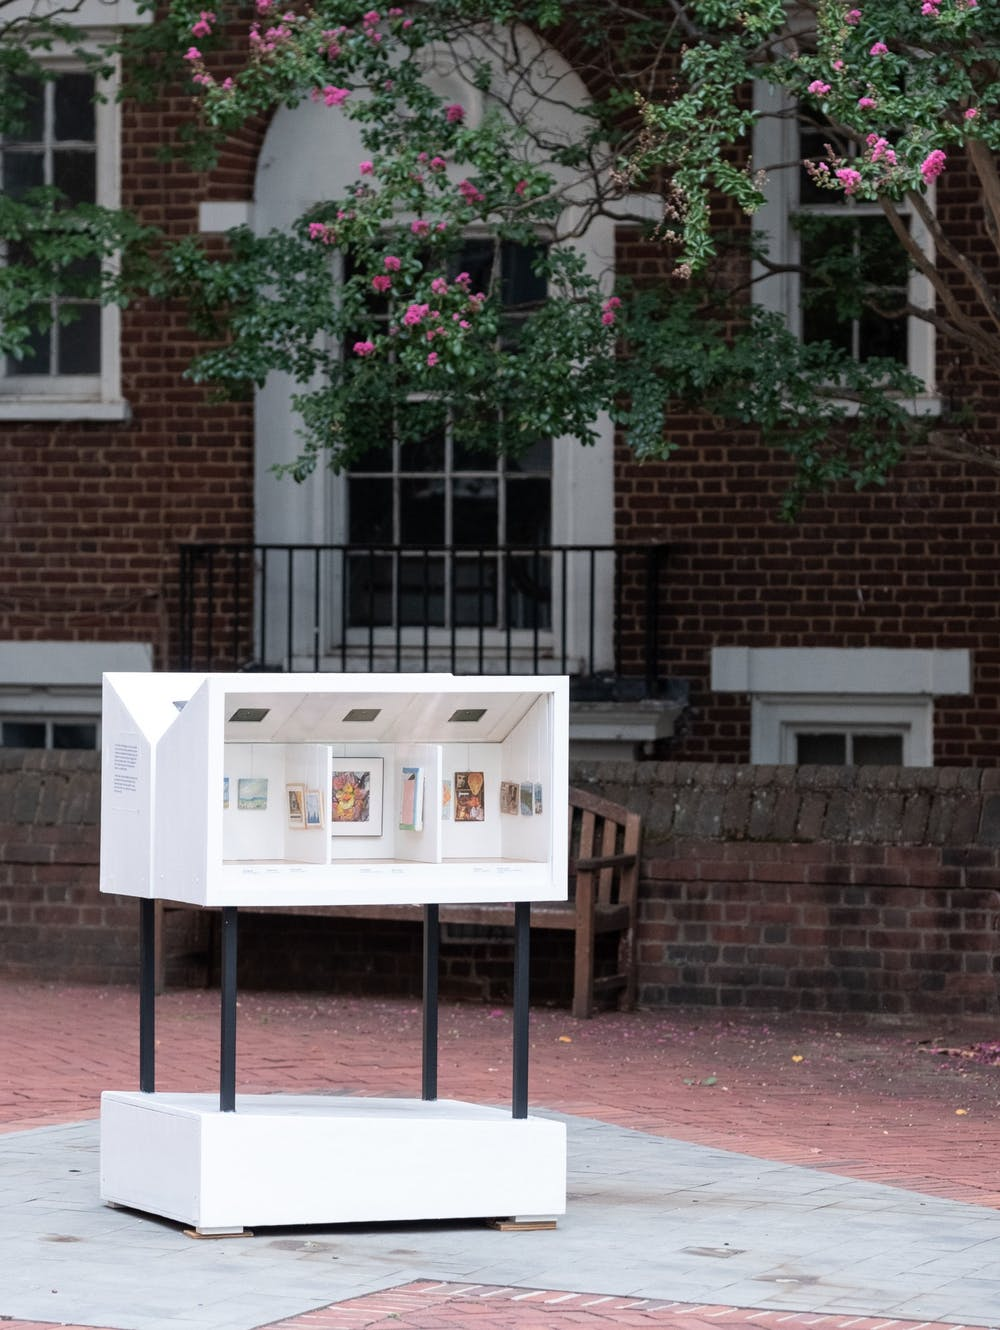 Both the Little Museum and the Museum Store can be found outside on the Cornell Plaza 24 hours per day.